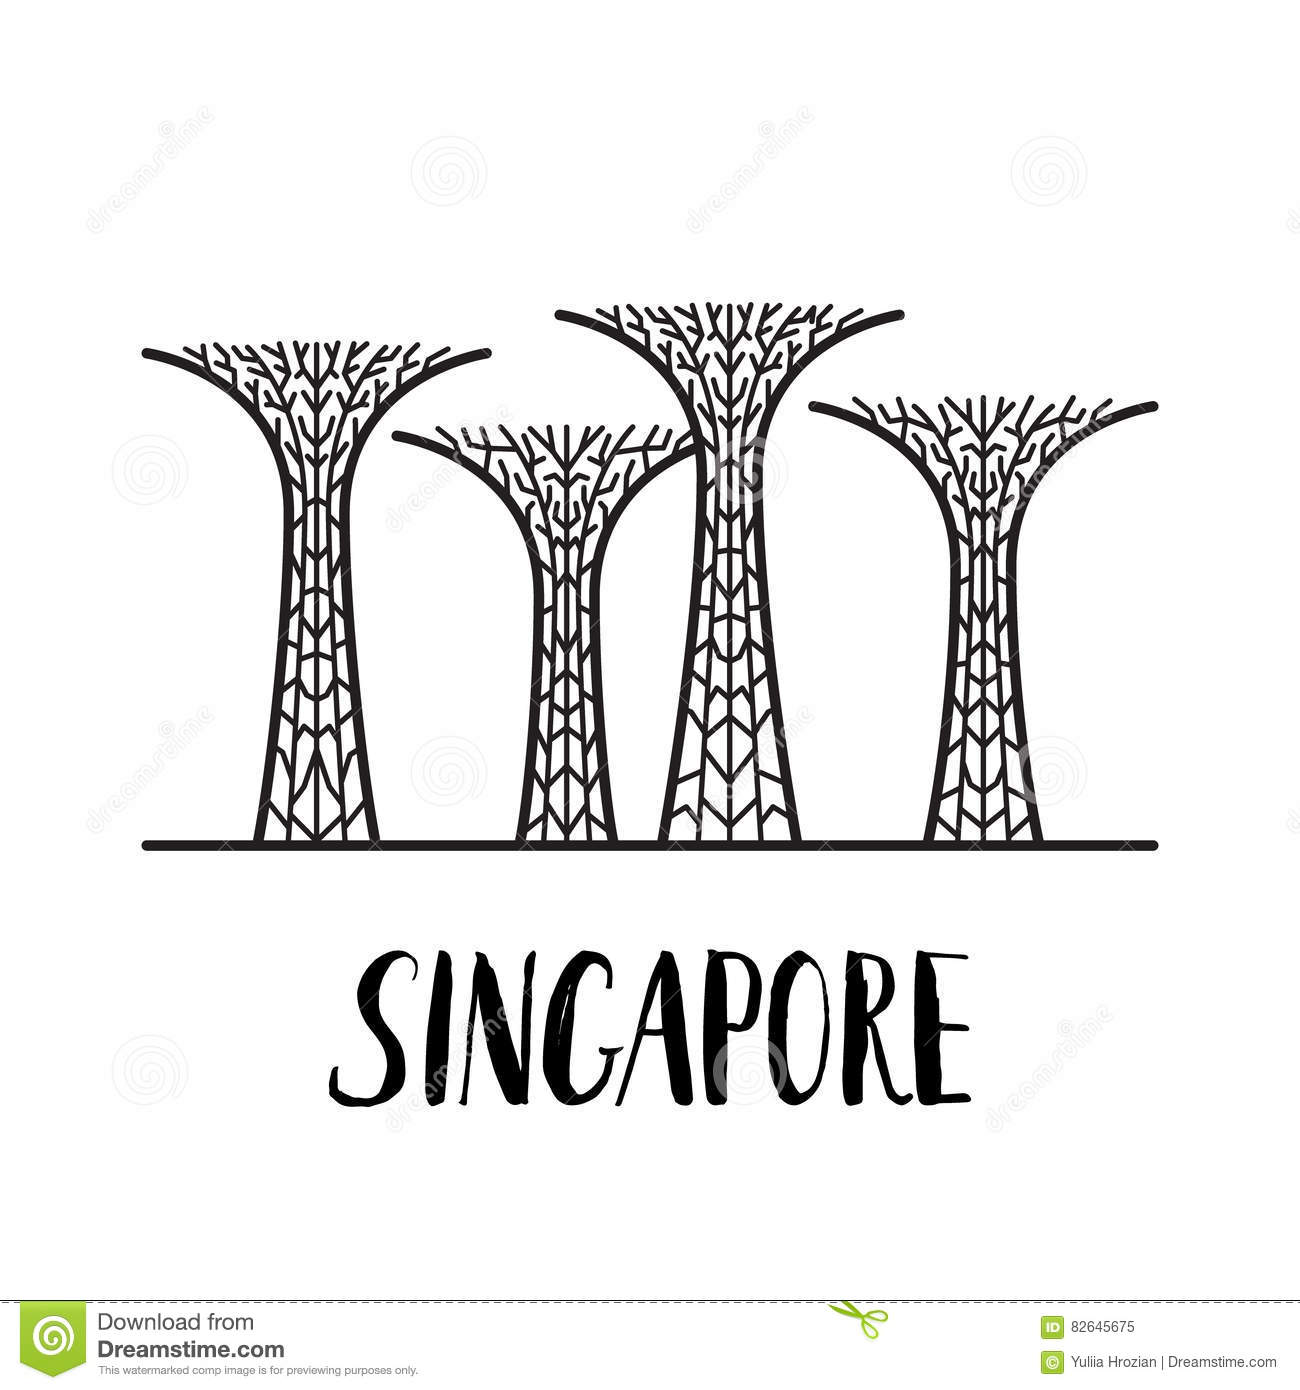 Famous Singapore Landmark Gardens By The Bay With Modern Lettering.